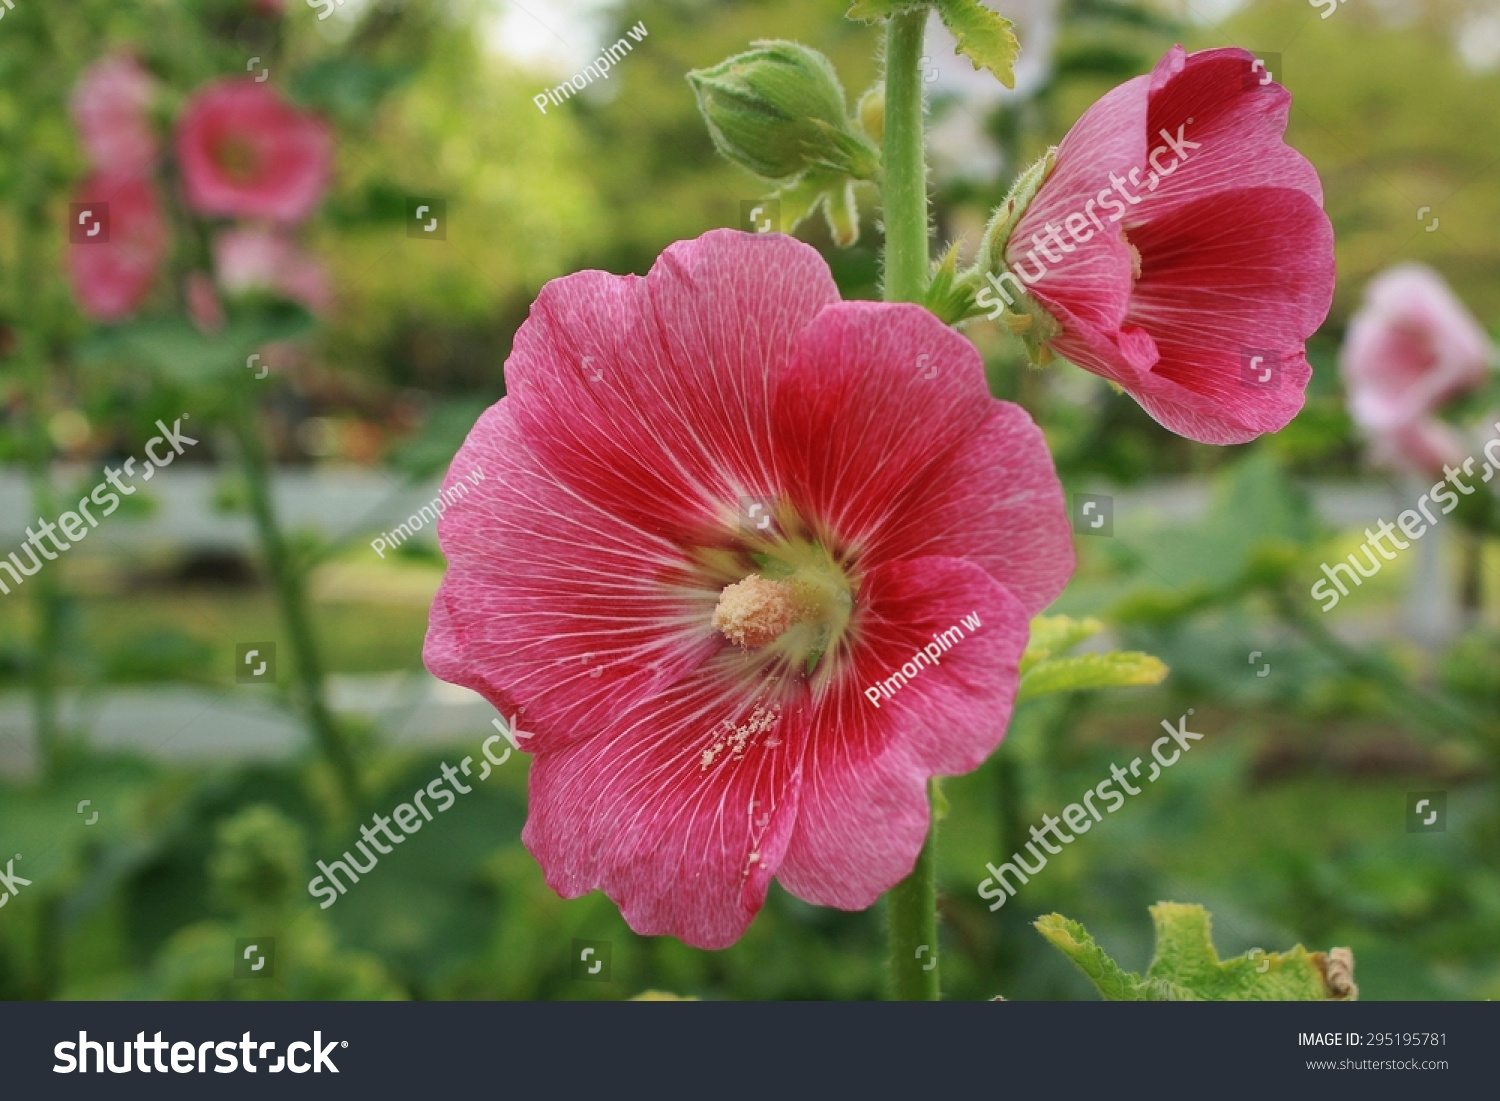 Orchidpinkcolor Rose Sharon Flower Blooms Garden Stock Photo ...